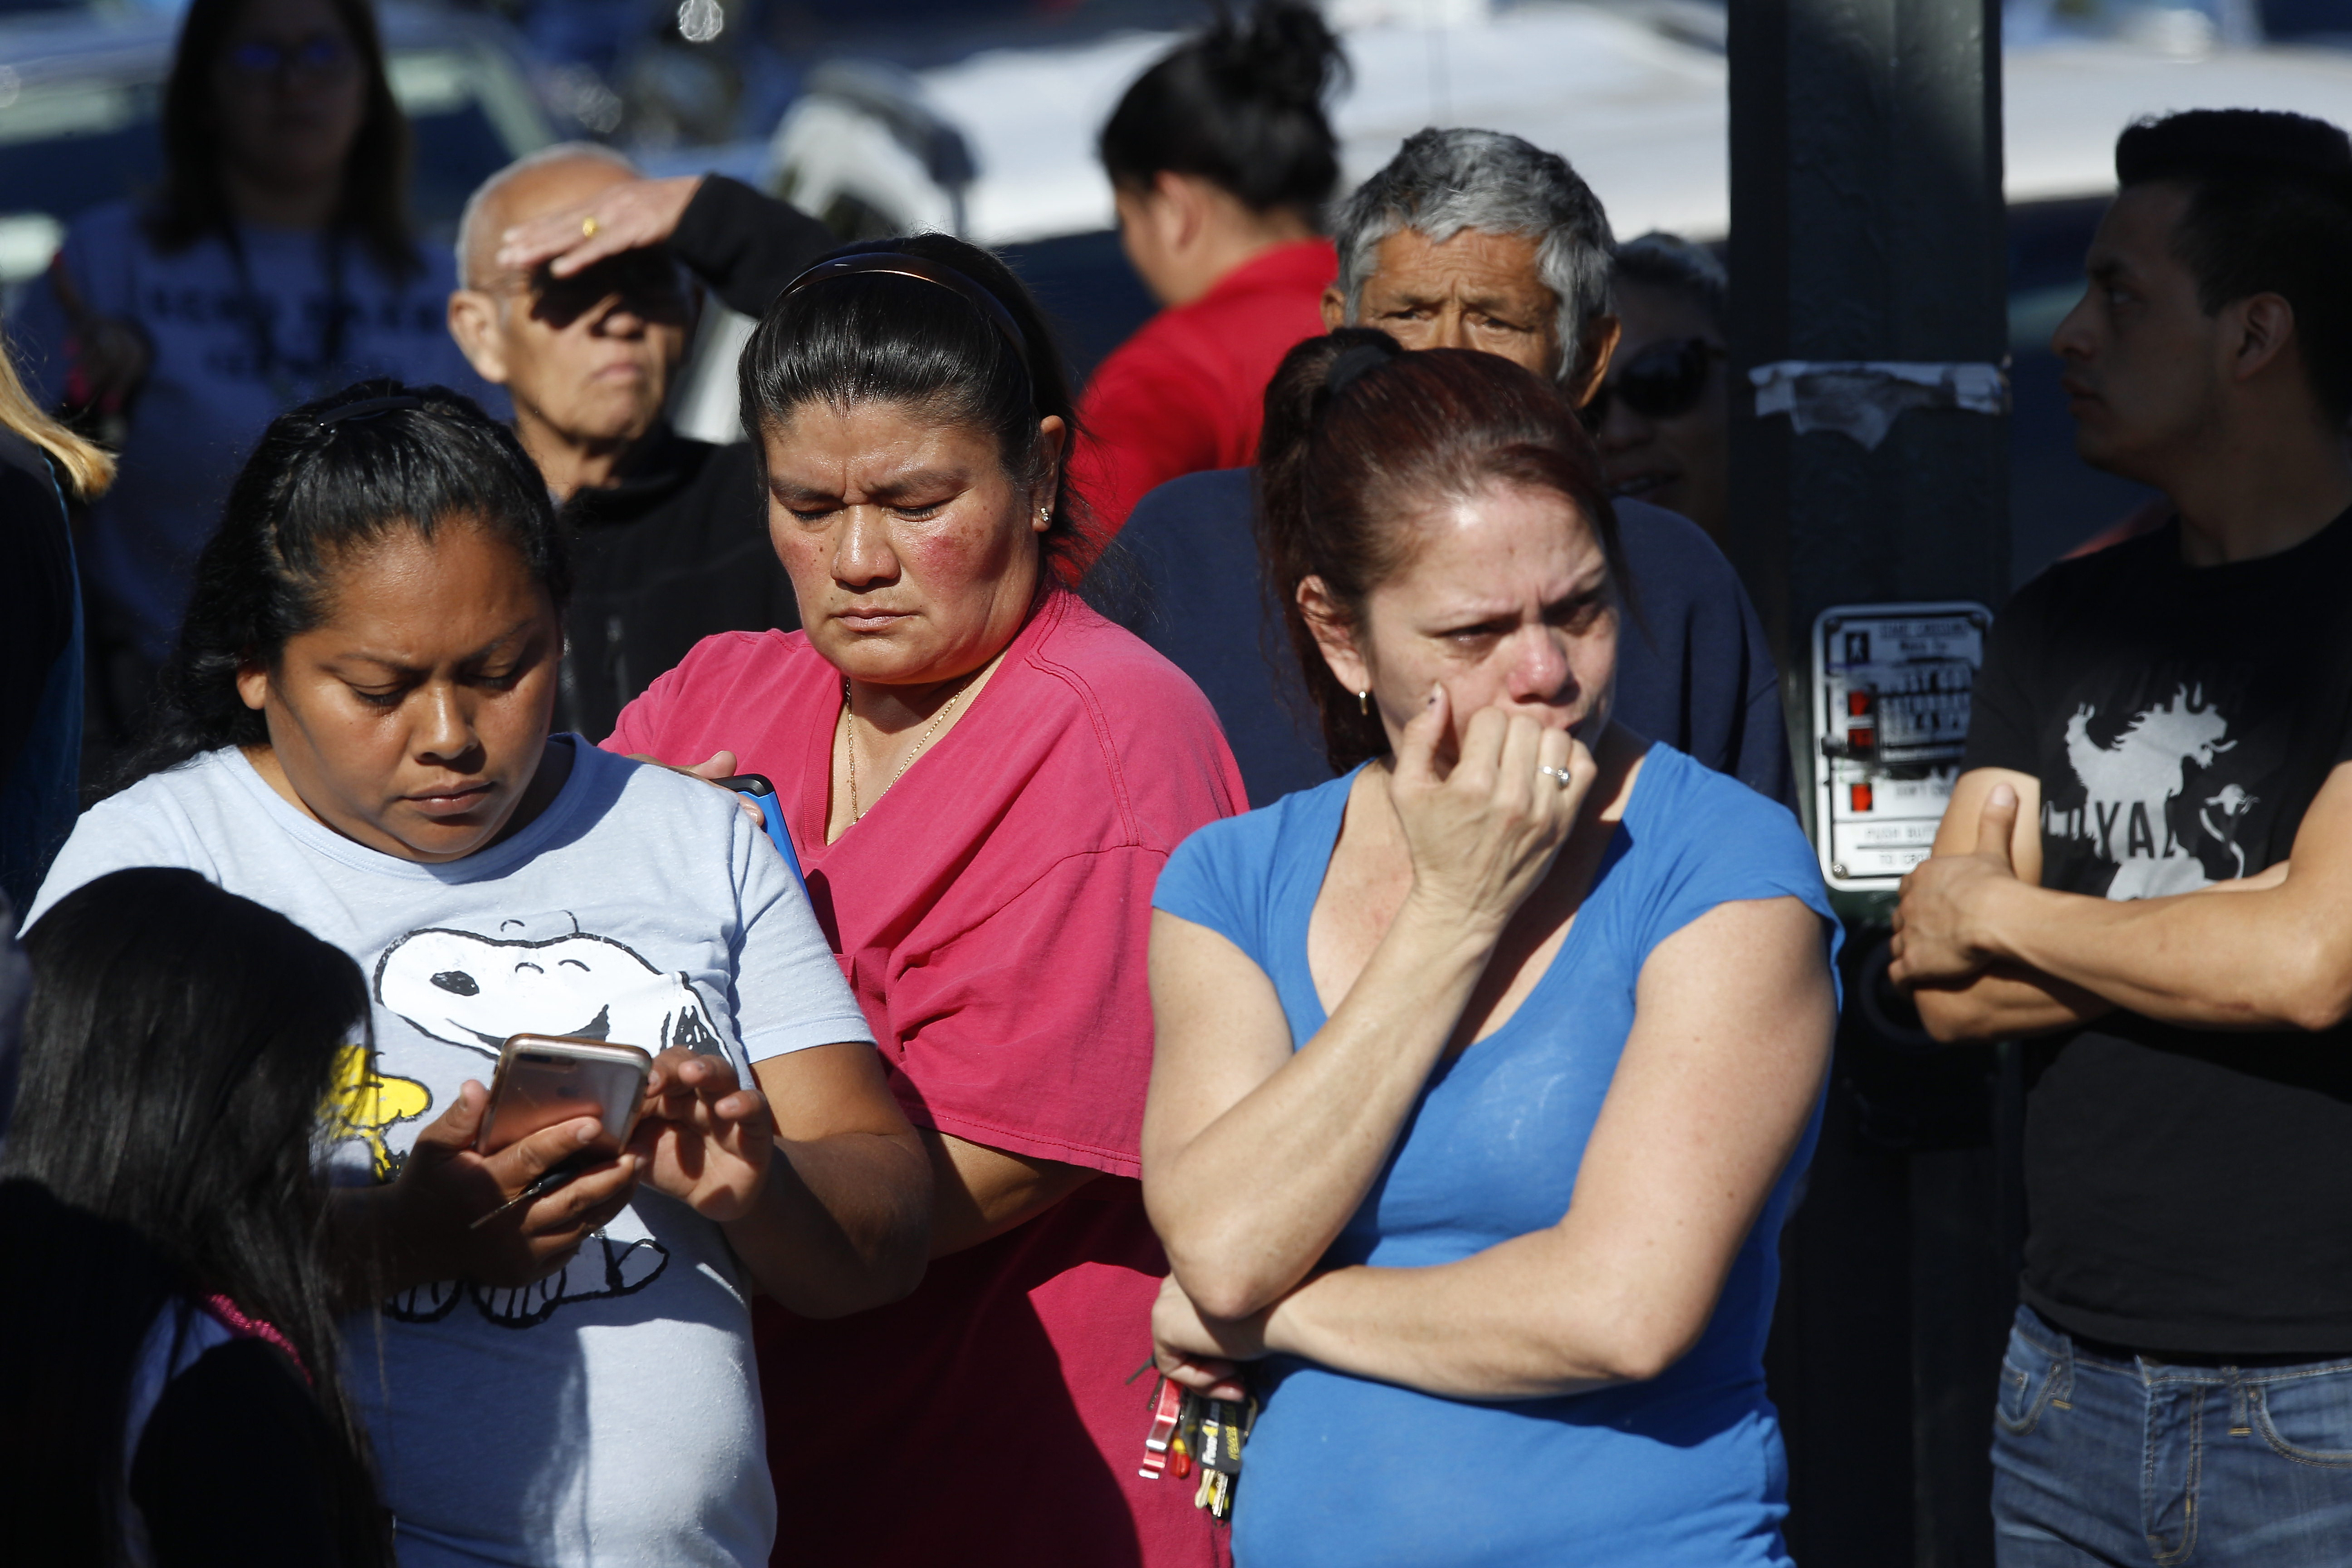 Parents wait for news of students at the Belmont High School in Los Angeles Thursday, Feb. 1, 2018. Two students were shot and wounded, one critically, inside a Los Angeles middle school classroom Thursday morning and police arrested a female student suspect, authorities said. (Damian Dovarganes)